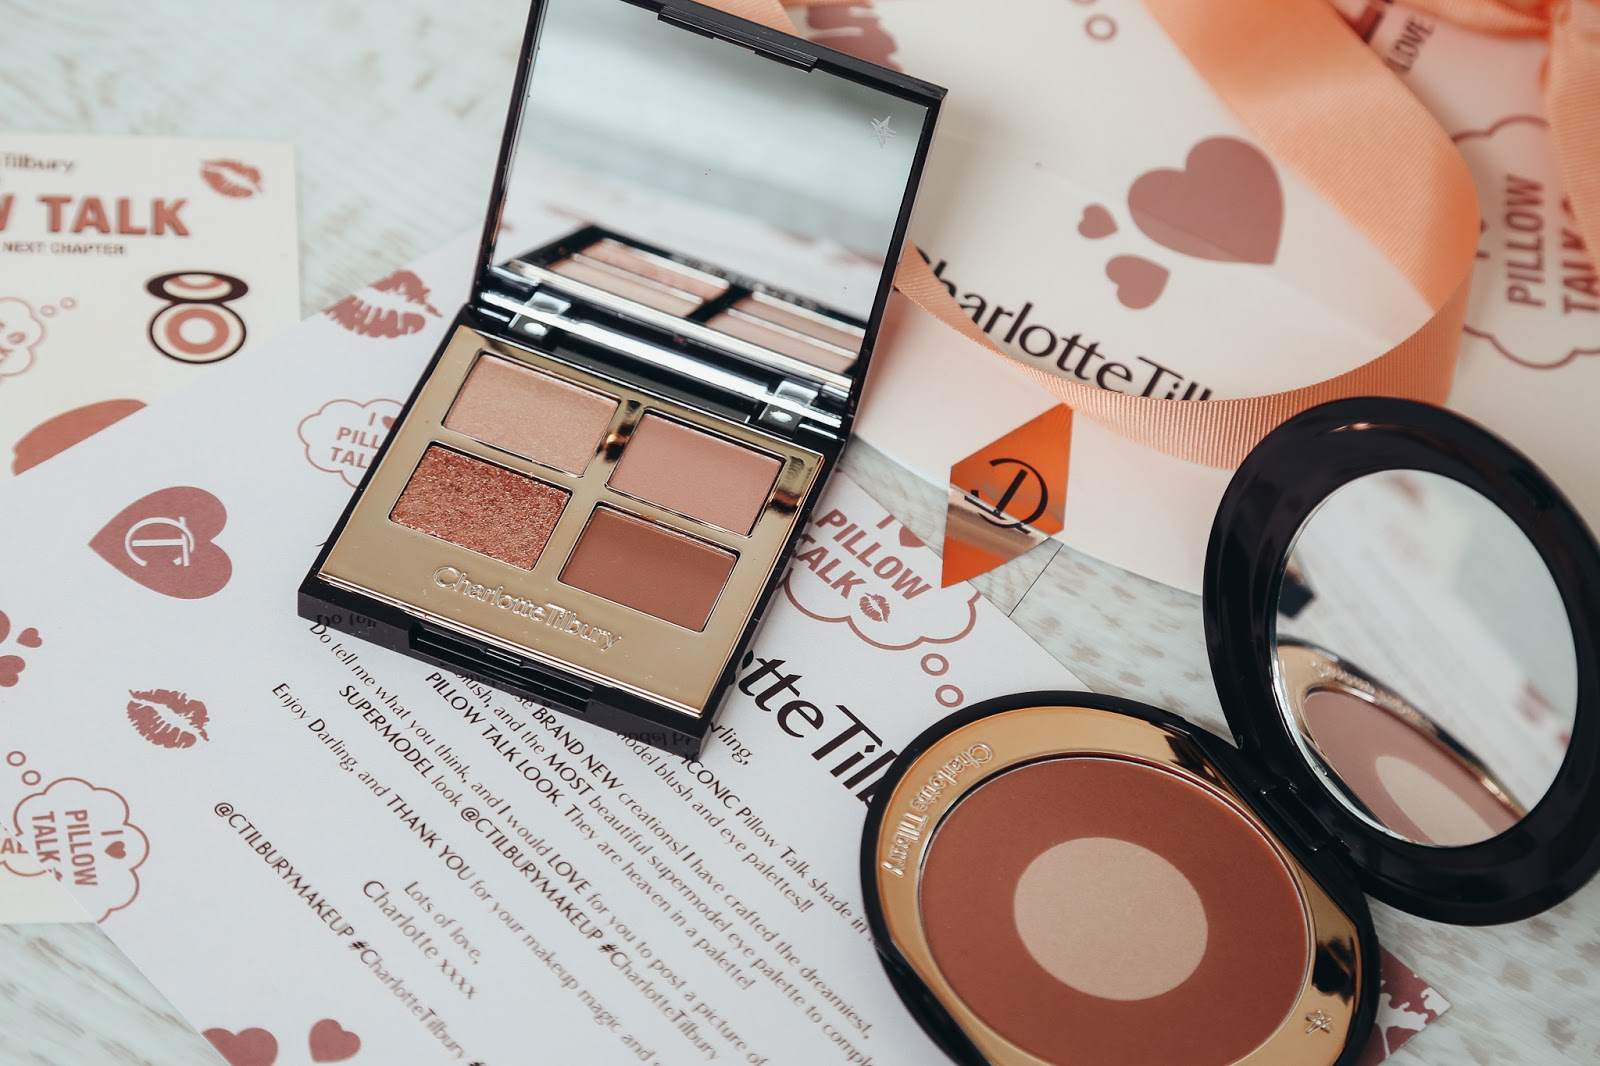 Charlotte Tilbury Pillow Talk eye shadow